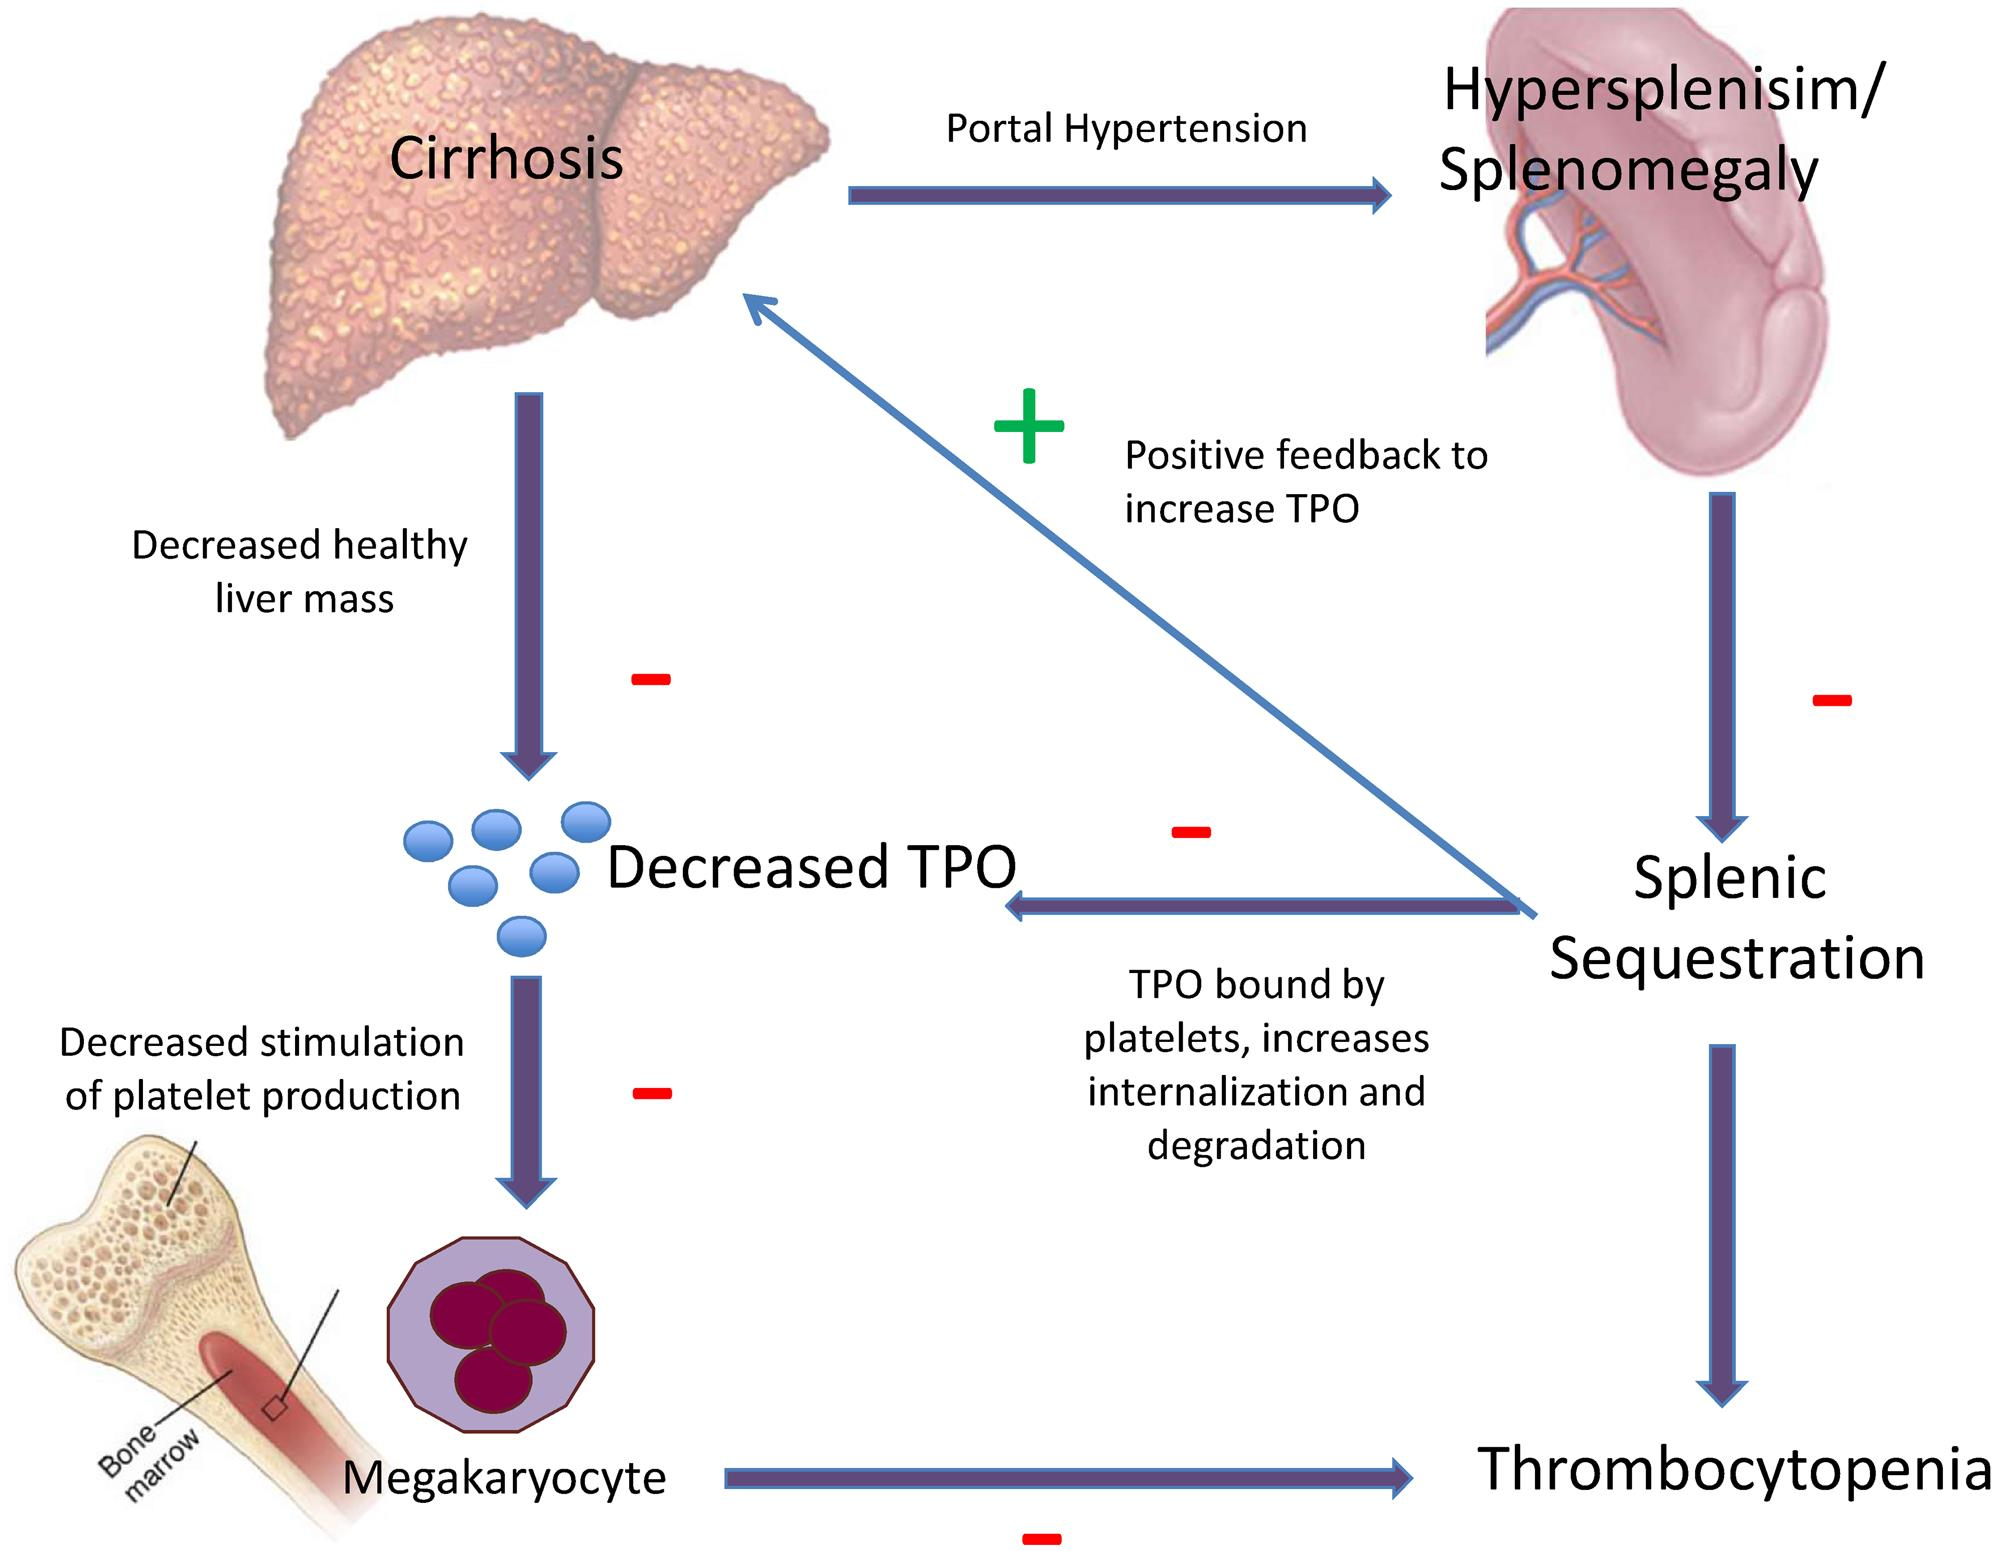 Relationships between cirrhosis and thrombocytopenia.